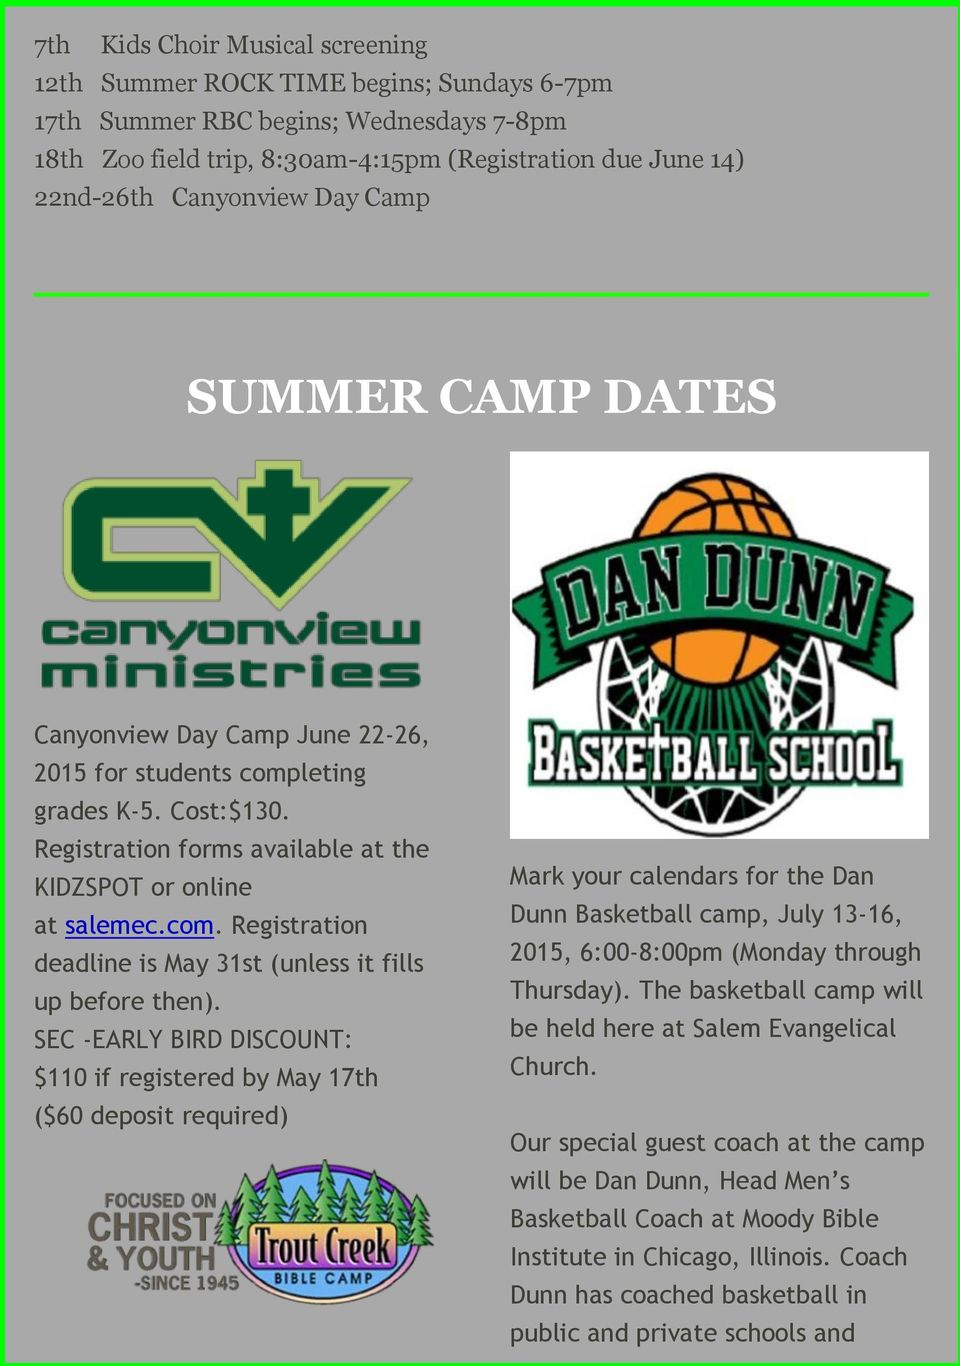 SEC -EARLY BIRD DISCOUNT: $110 if registered by May 17th ($60 deposit required) Mark your calendars for the Dan Dunn Basketball camp, July 13-16, 2015, 6:00-8:00pm (Monday through Thursday).